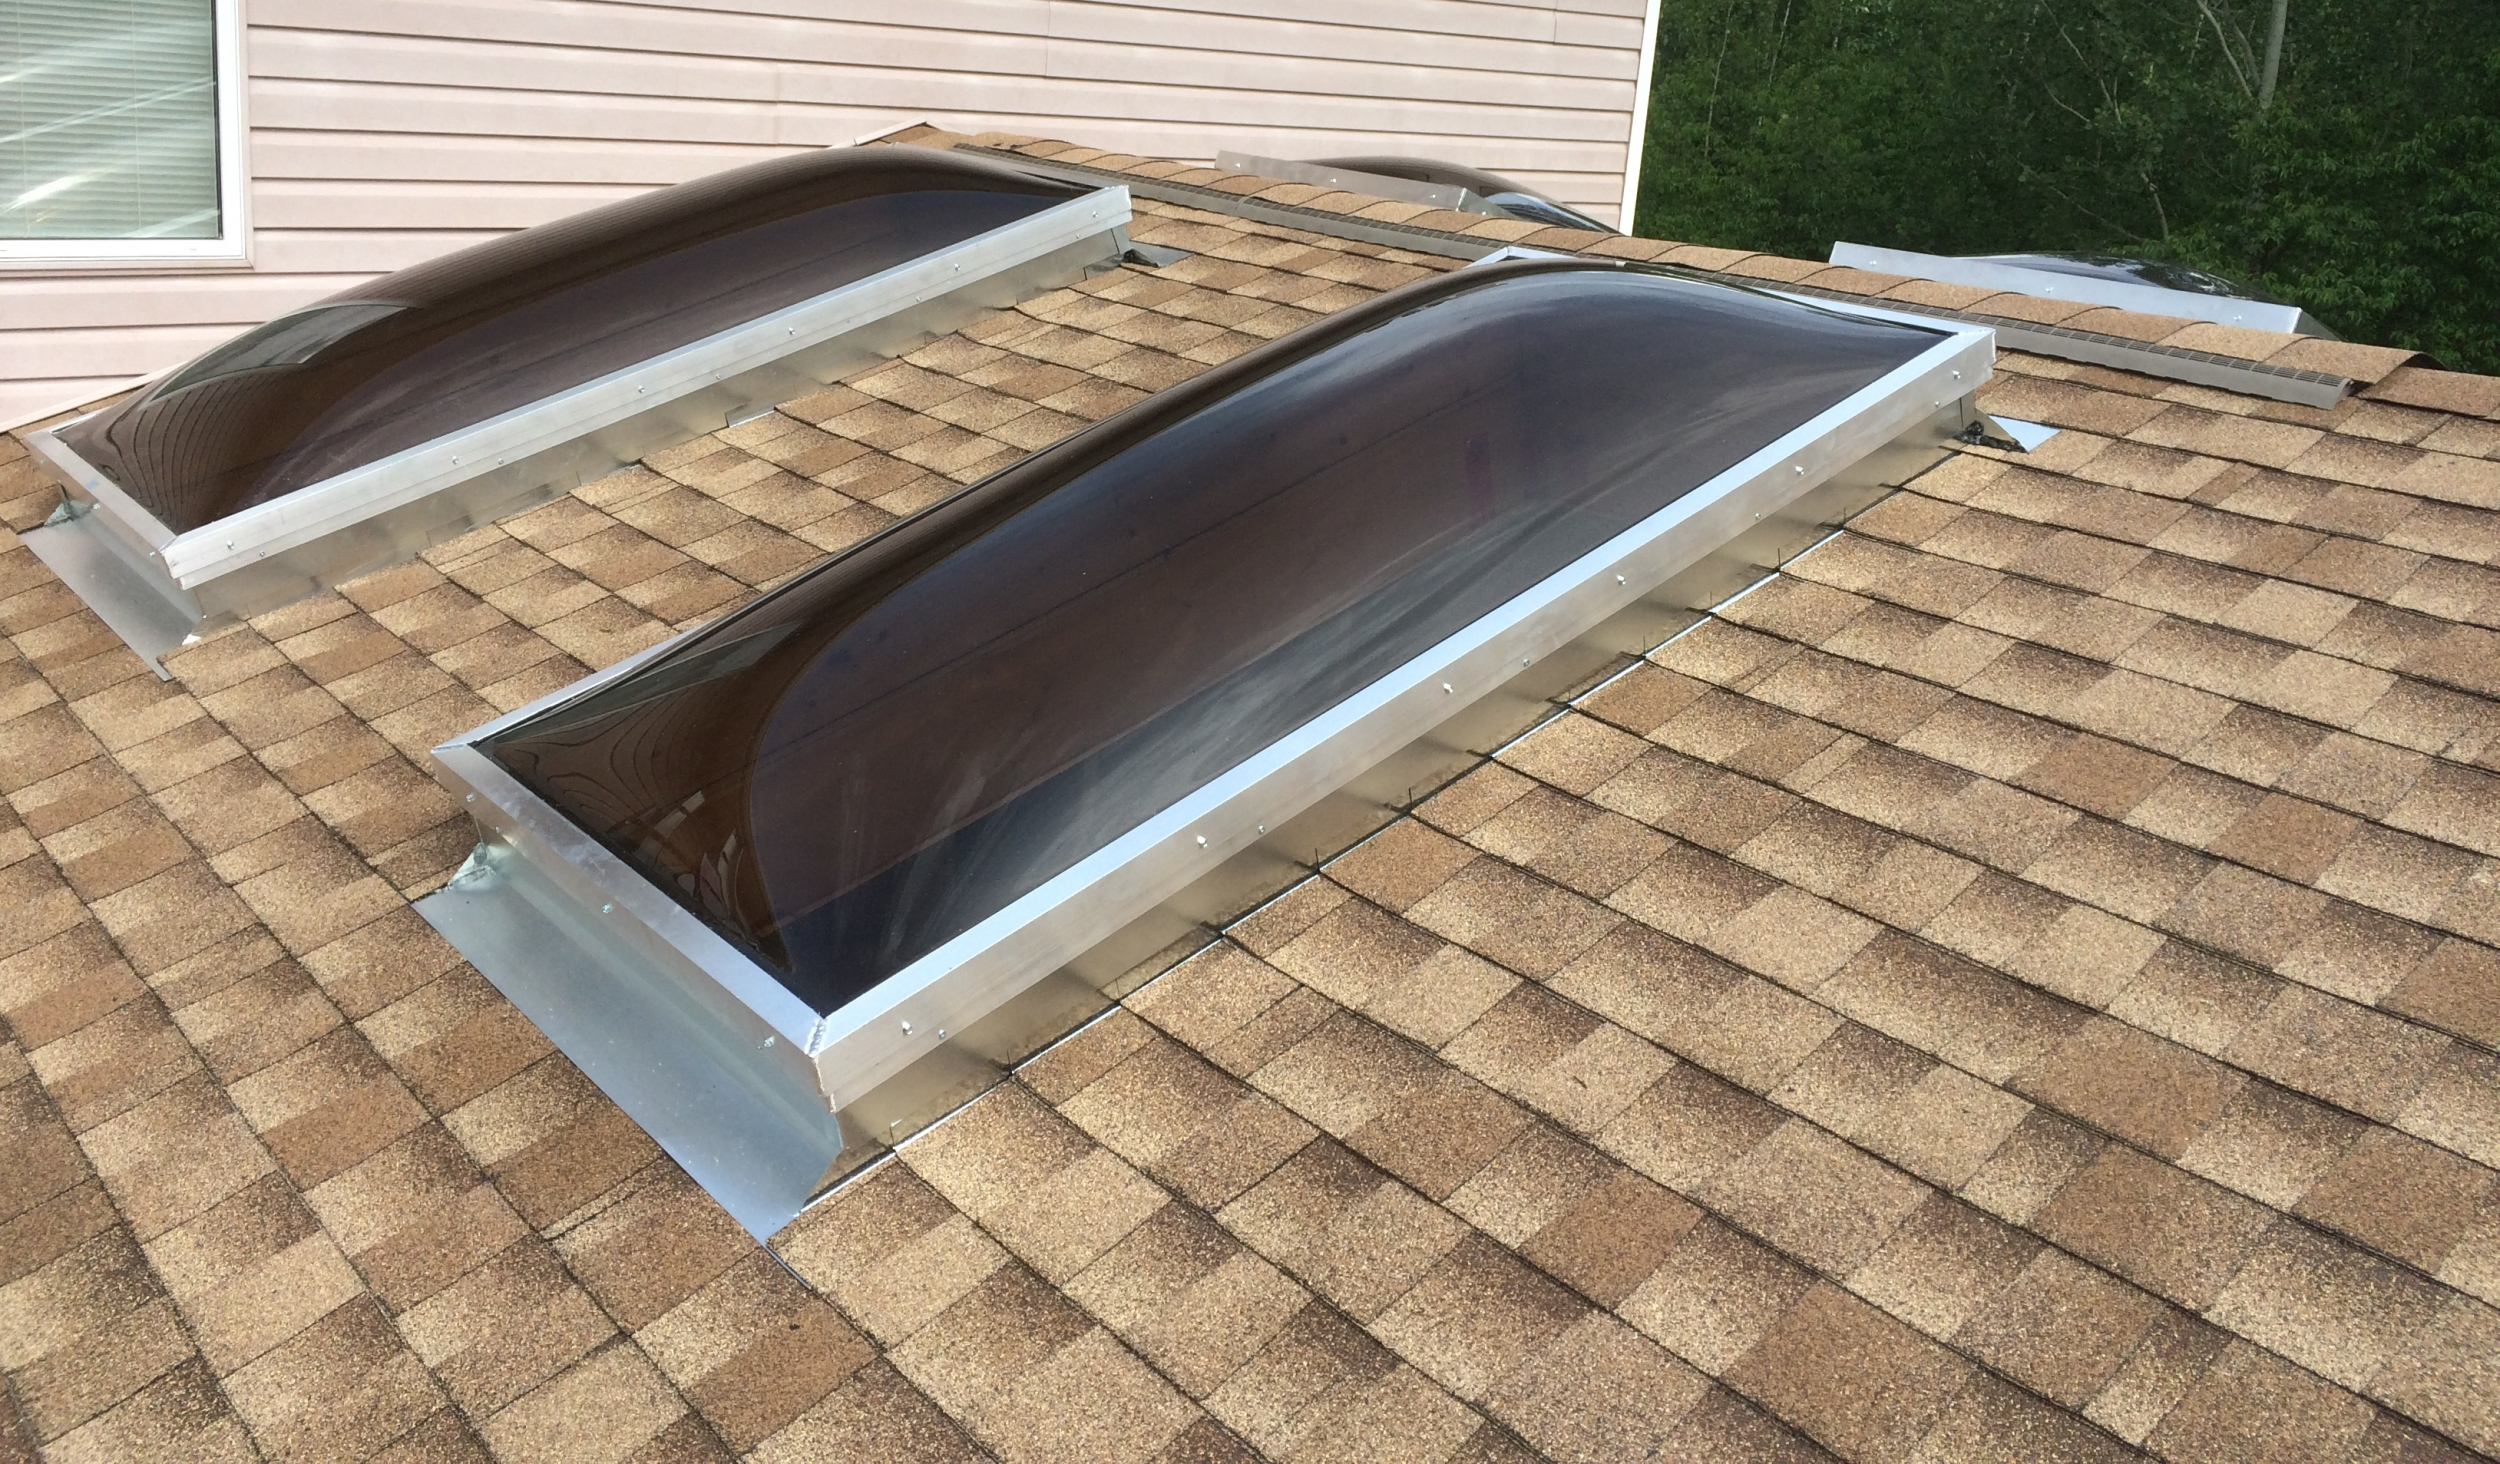 Contract titan s roofing for How to clean velux skylights